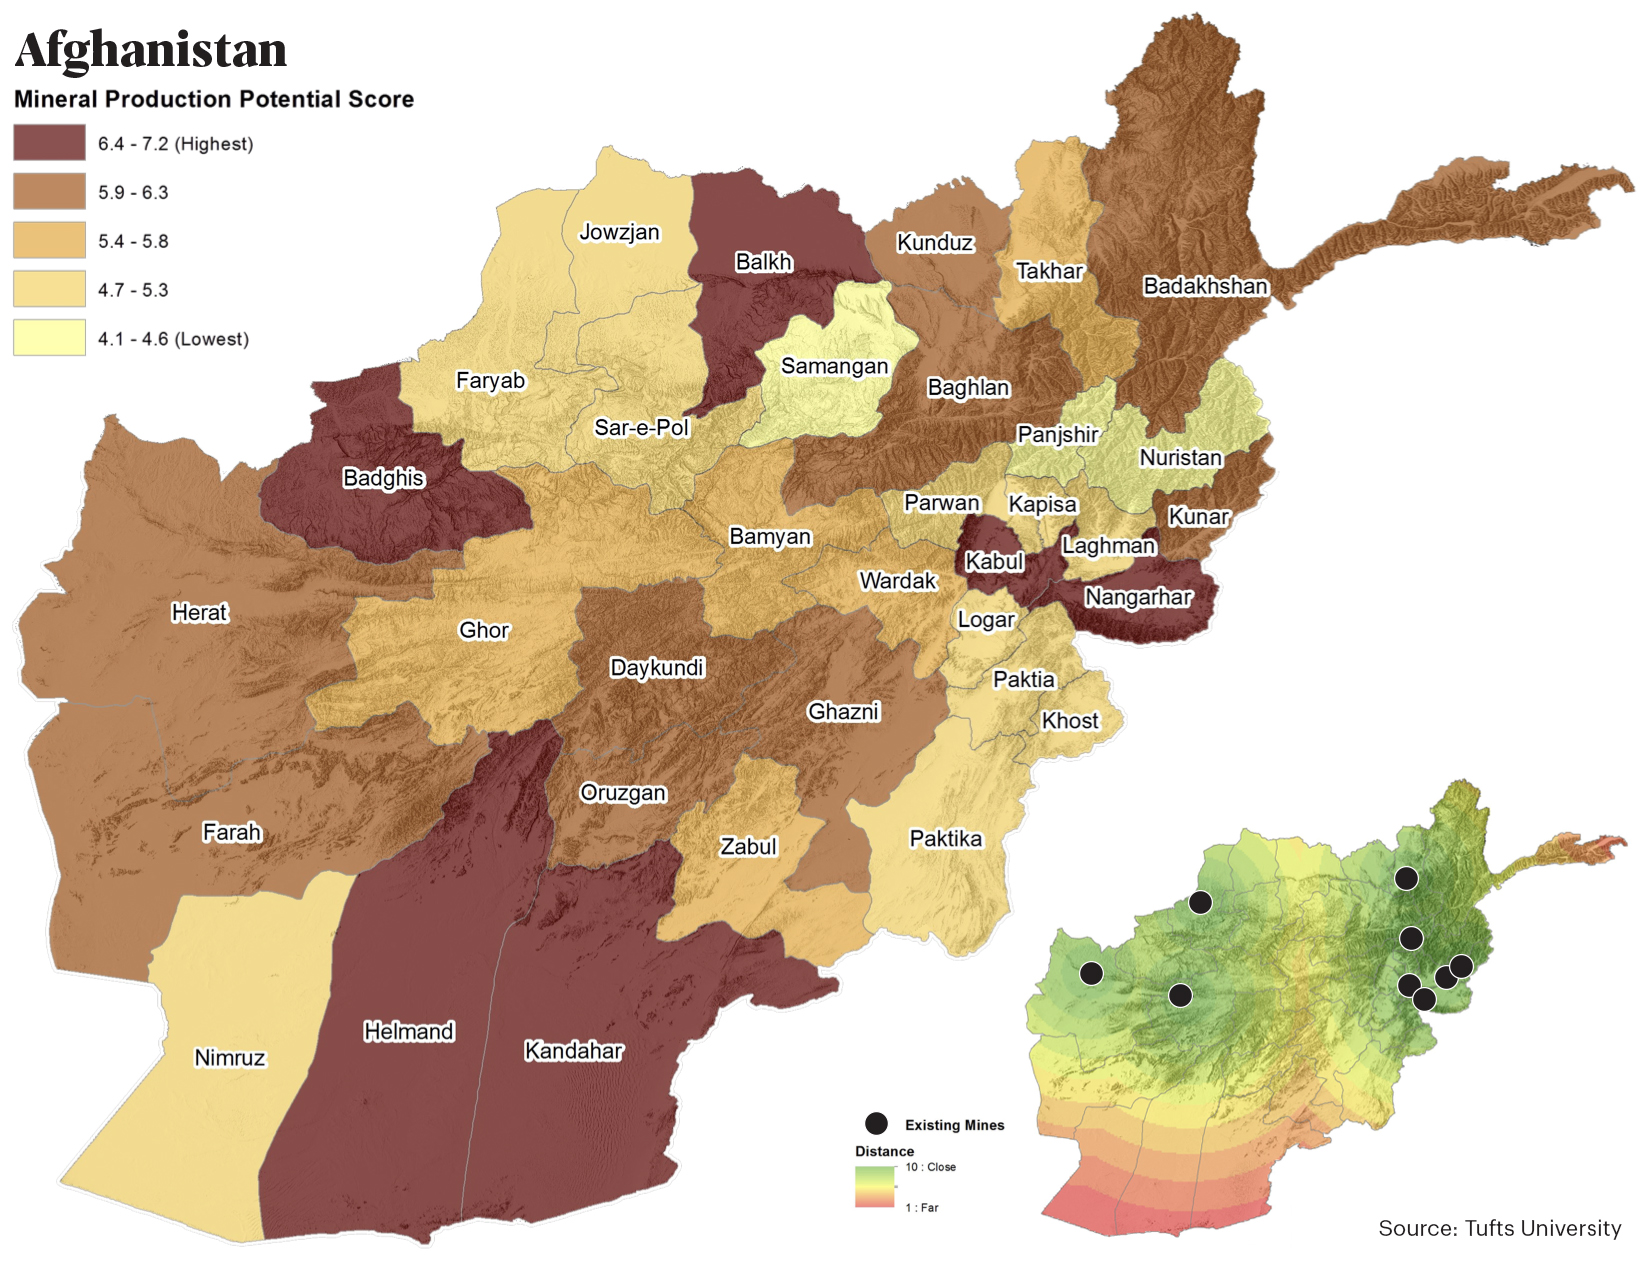 afghanistan mineral production potential